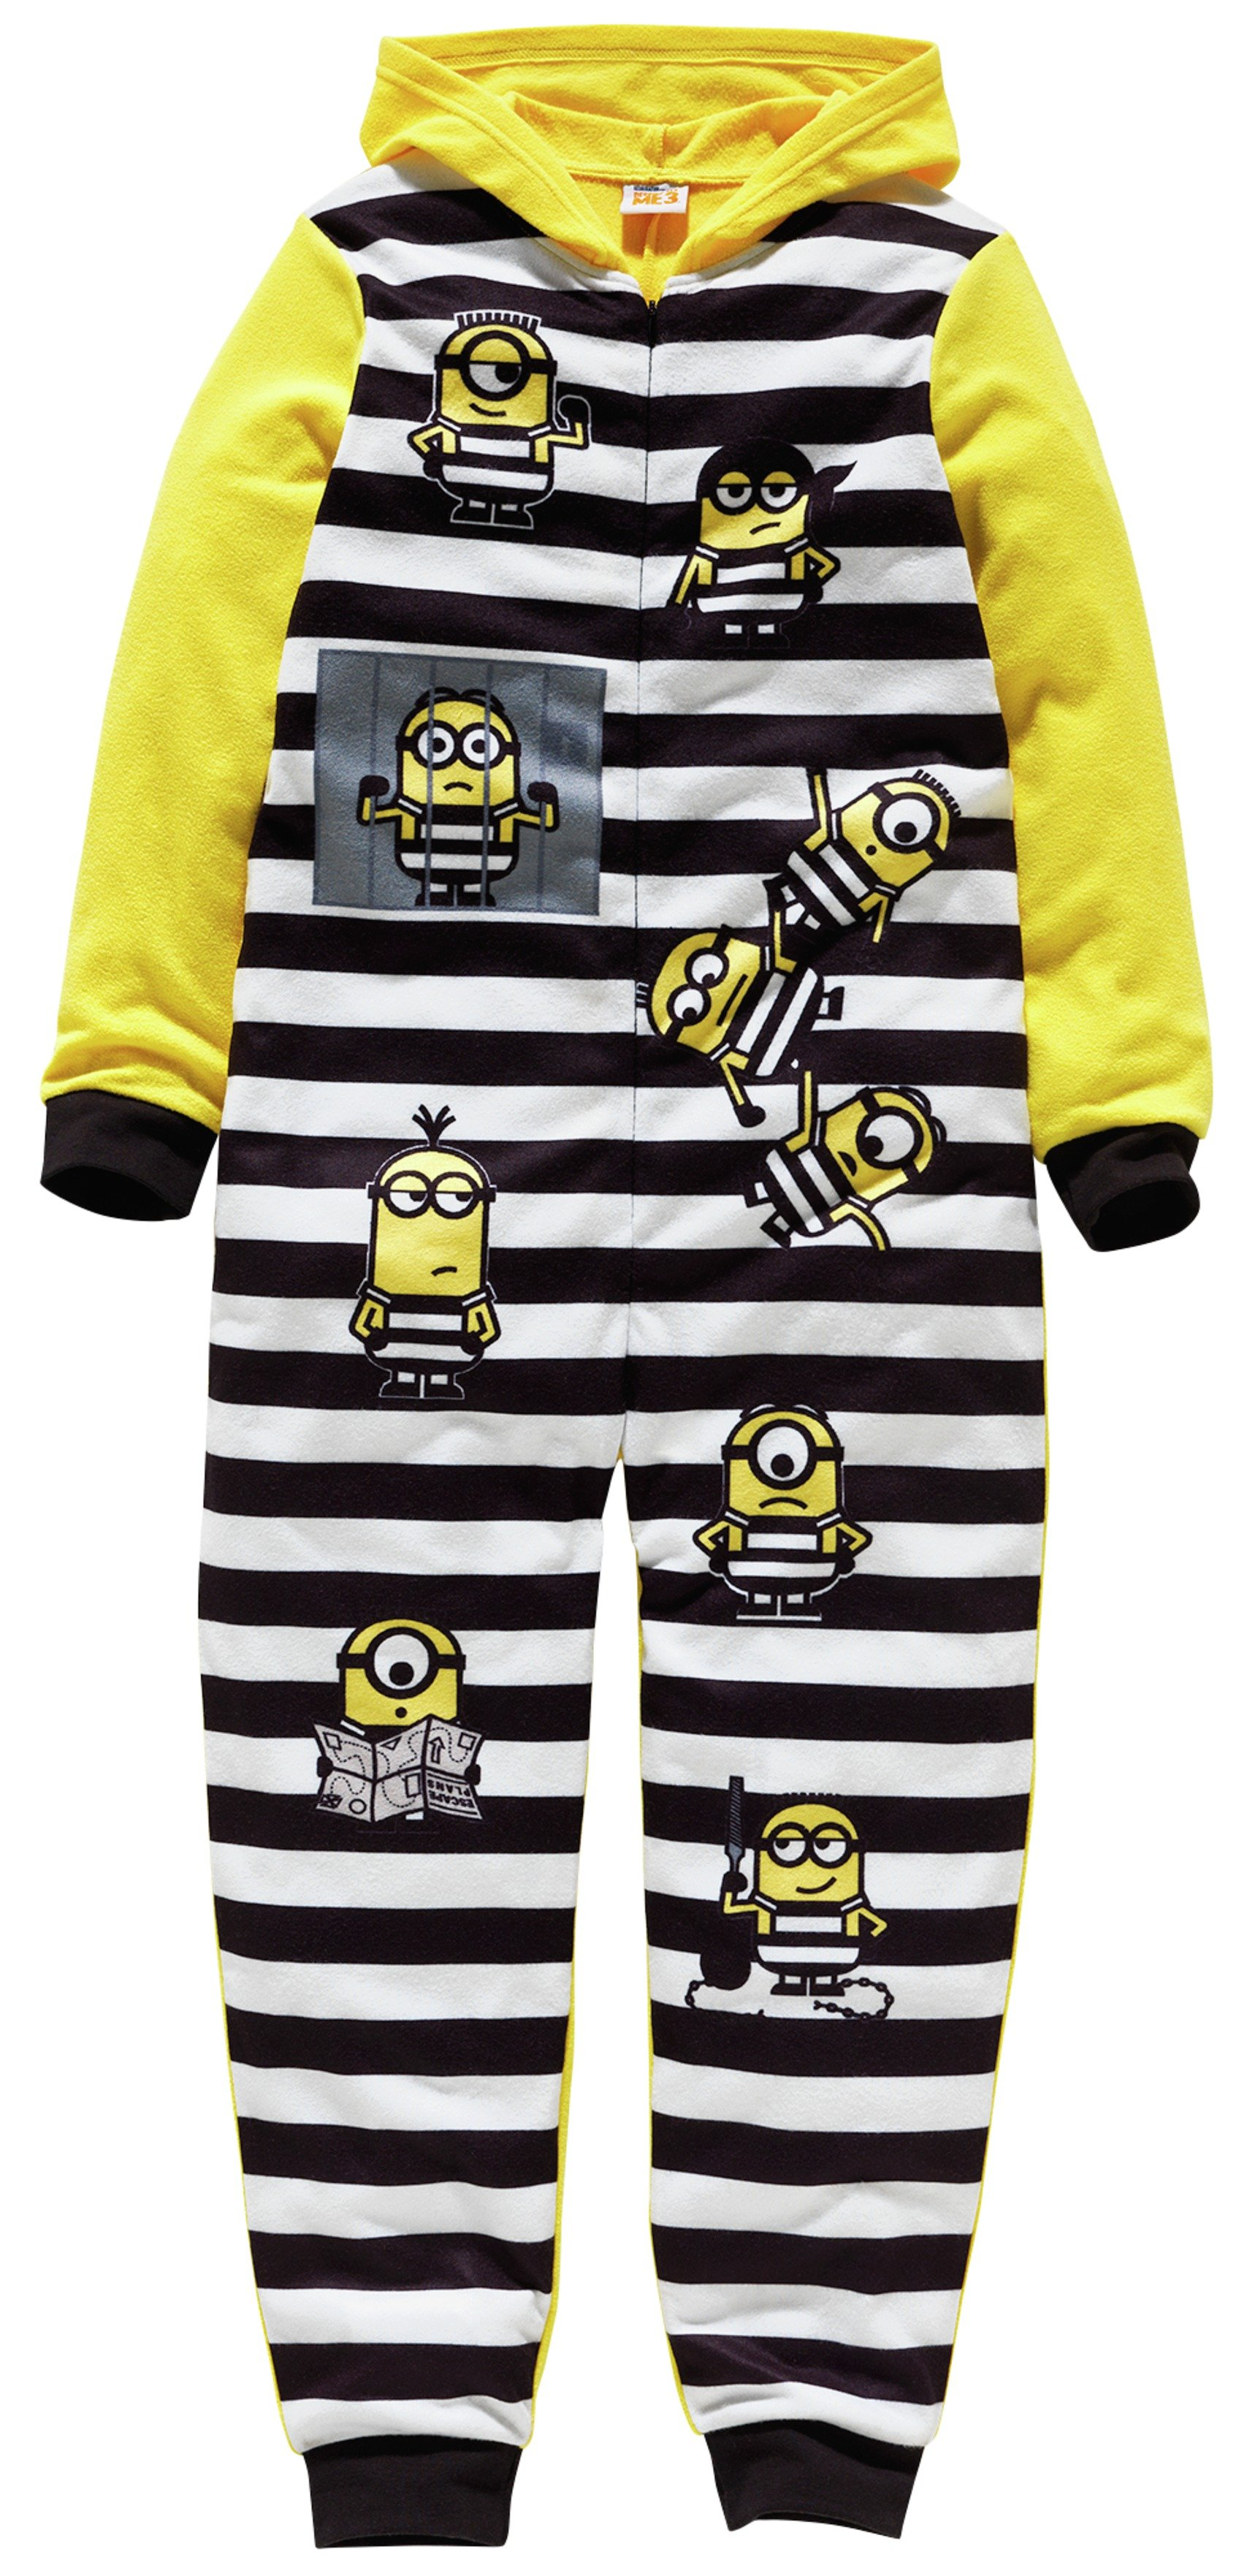 'Minions Yellow Onesie - 5-6 Years